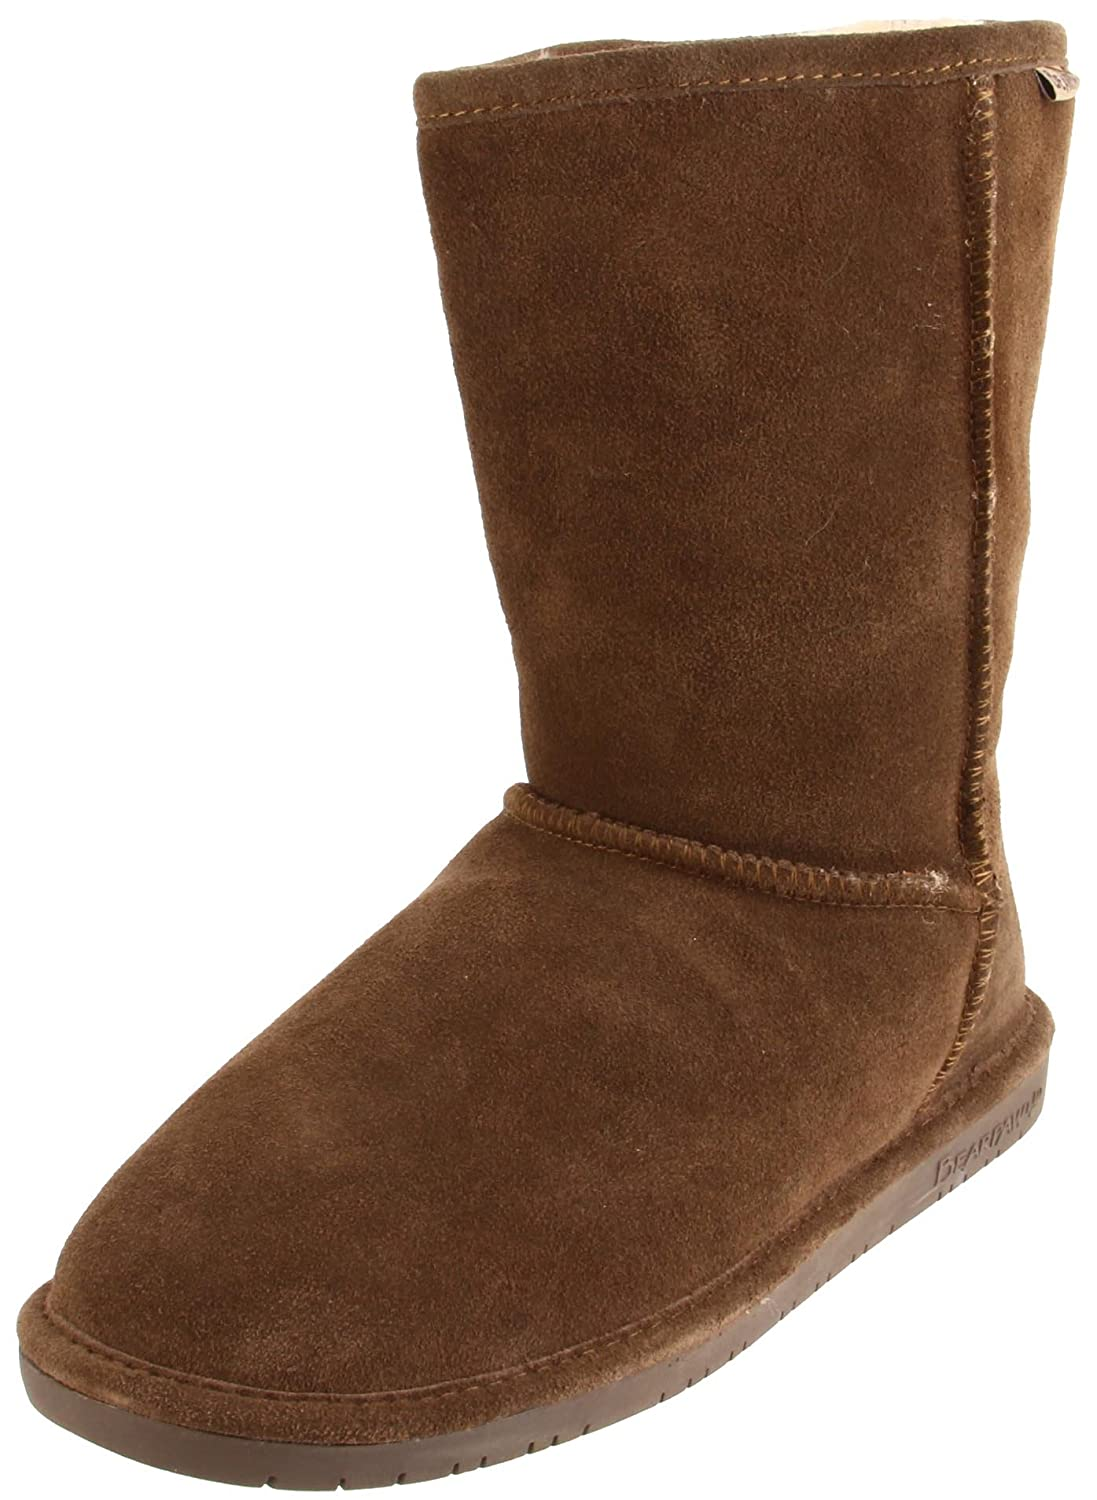 50% Off Select BEARPAW Boots & Slippers